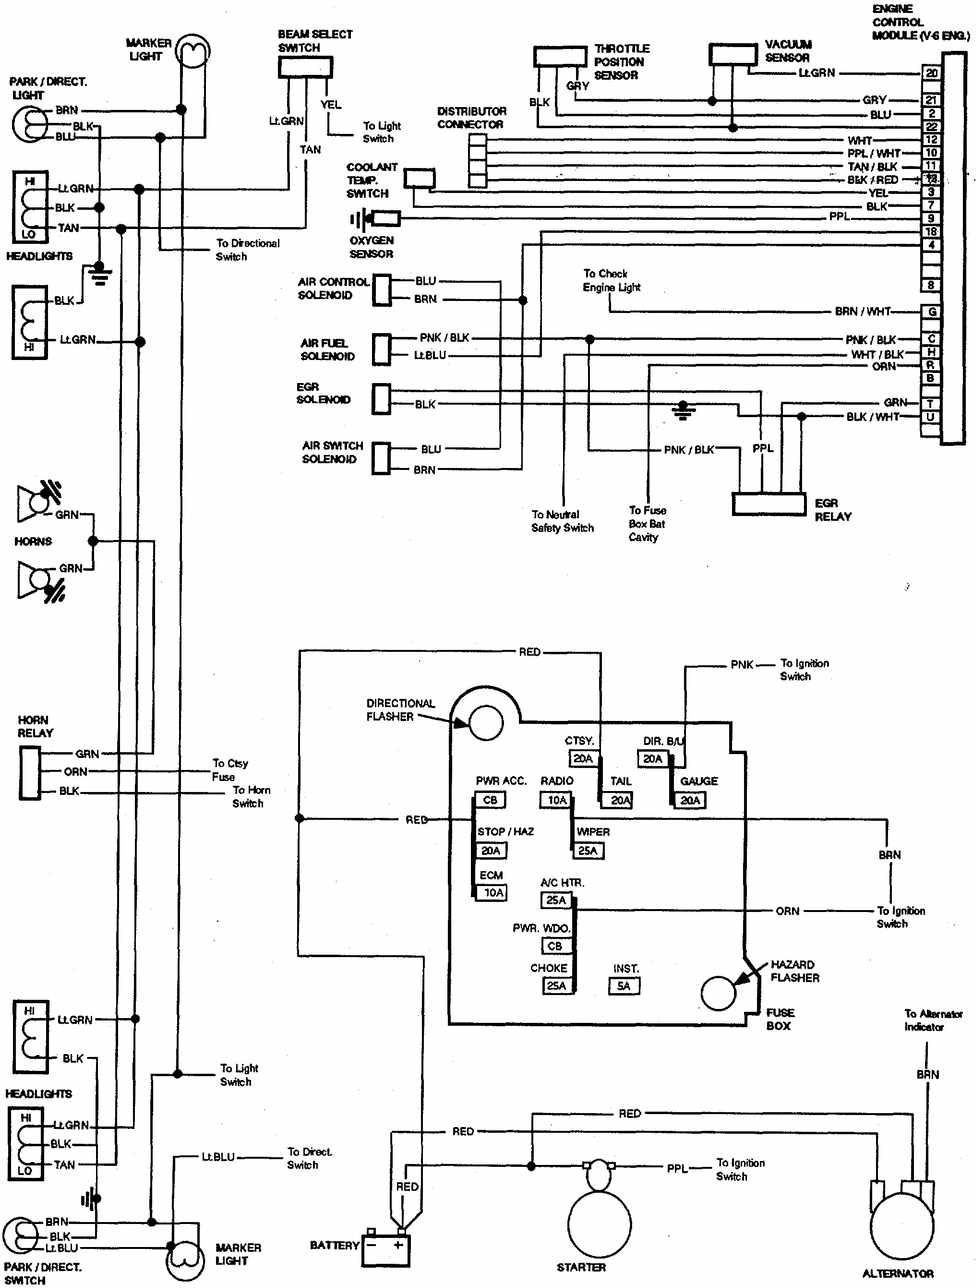 Herein We Can See The 1981 1987 Chevrolet V8 Trucks Electrical Wiring Diagram Description From Diagram 1984 Chevy Truck Chevy Trucks Electrical Wiring Diagram